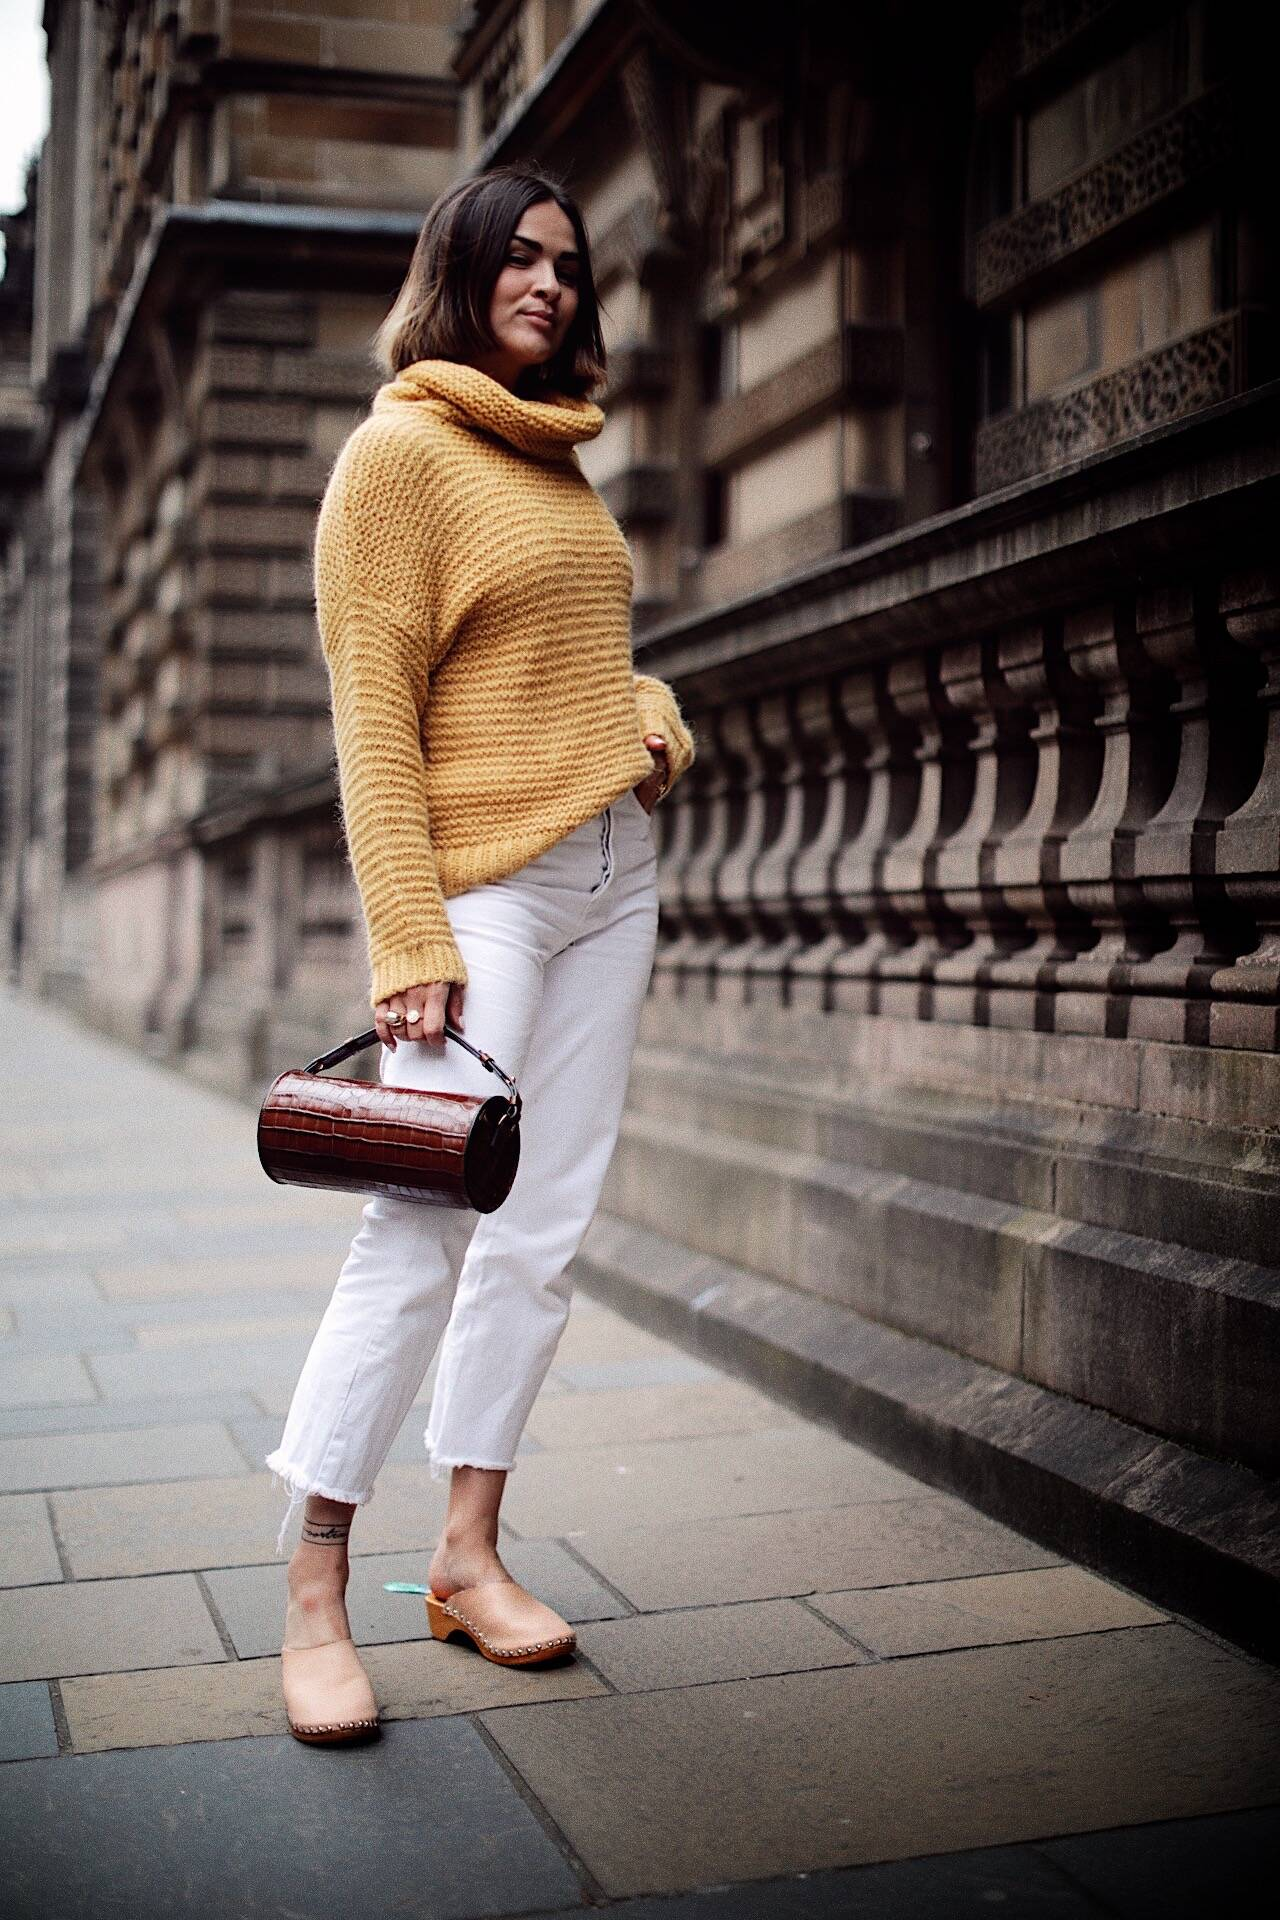 LAFOTKA Autumn Style White Jeans Clogs Yellow Knit 20206